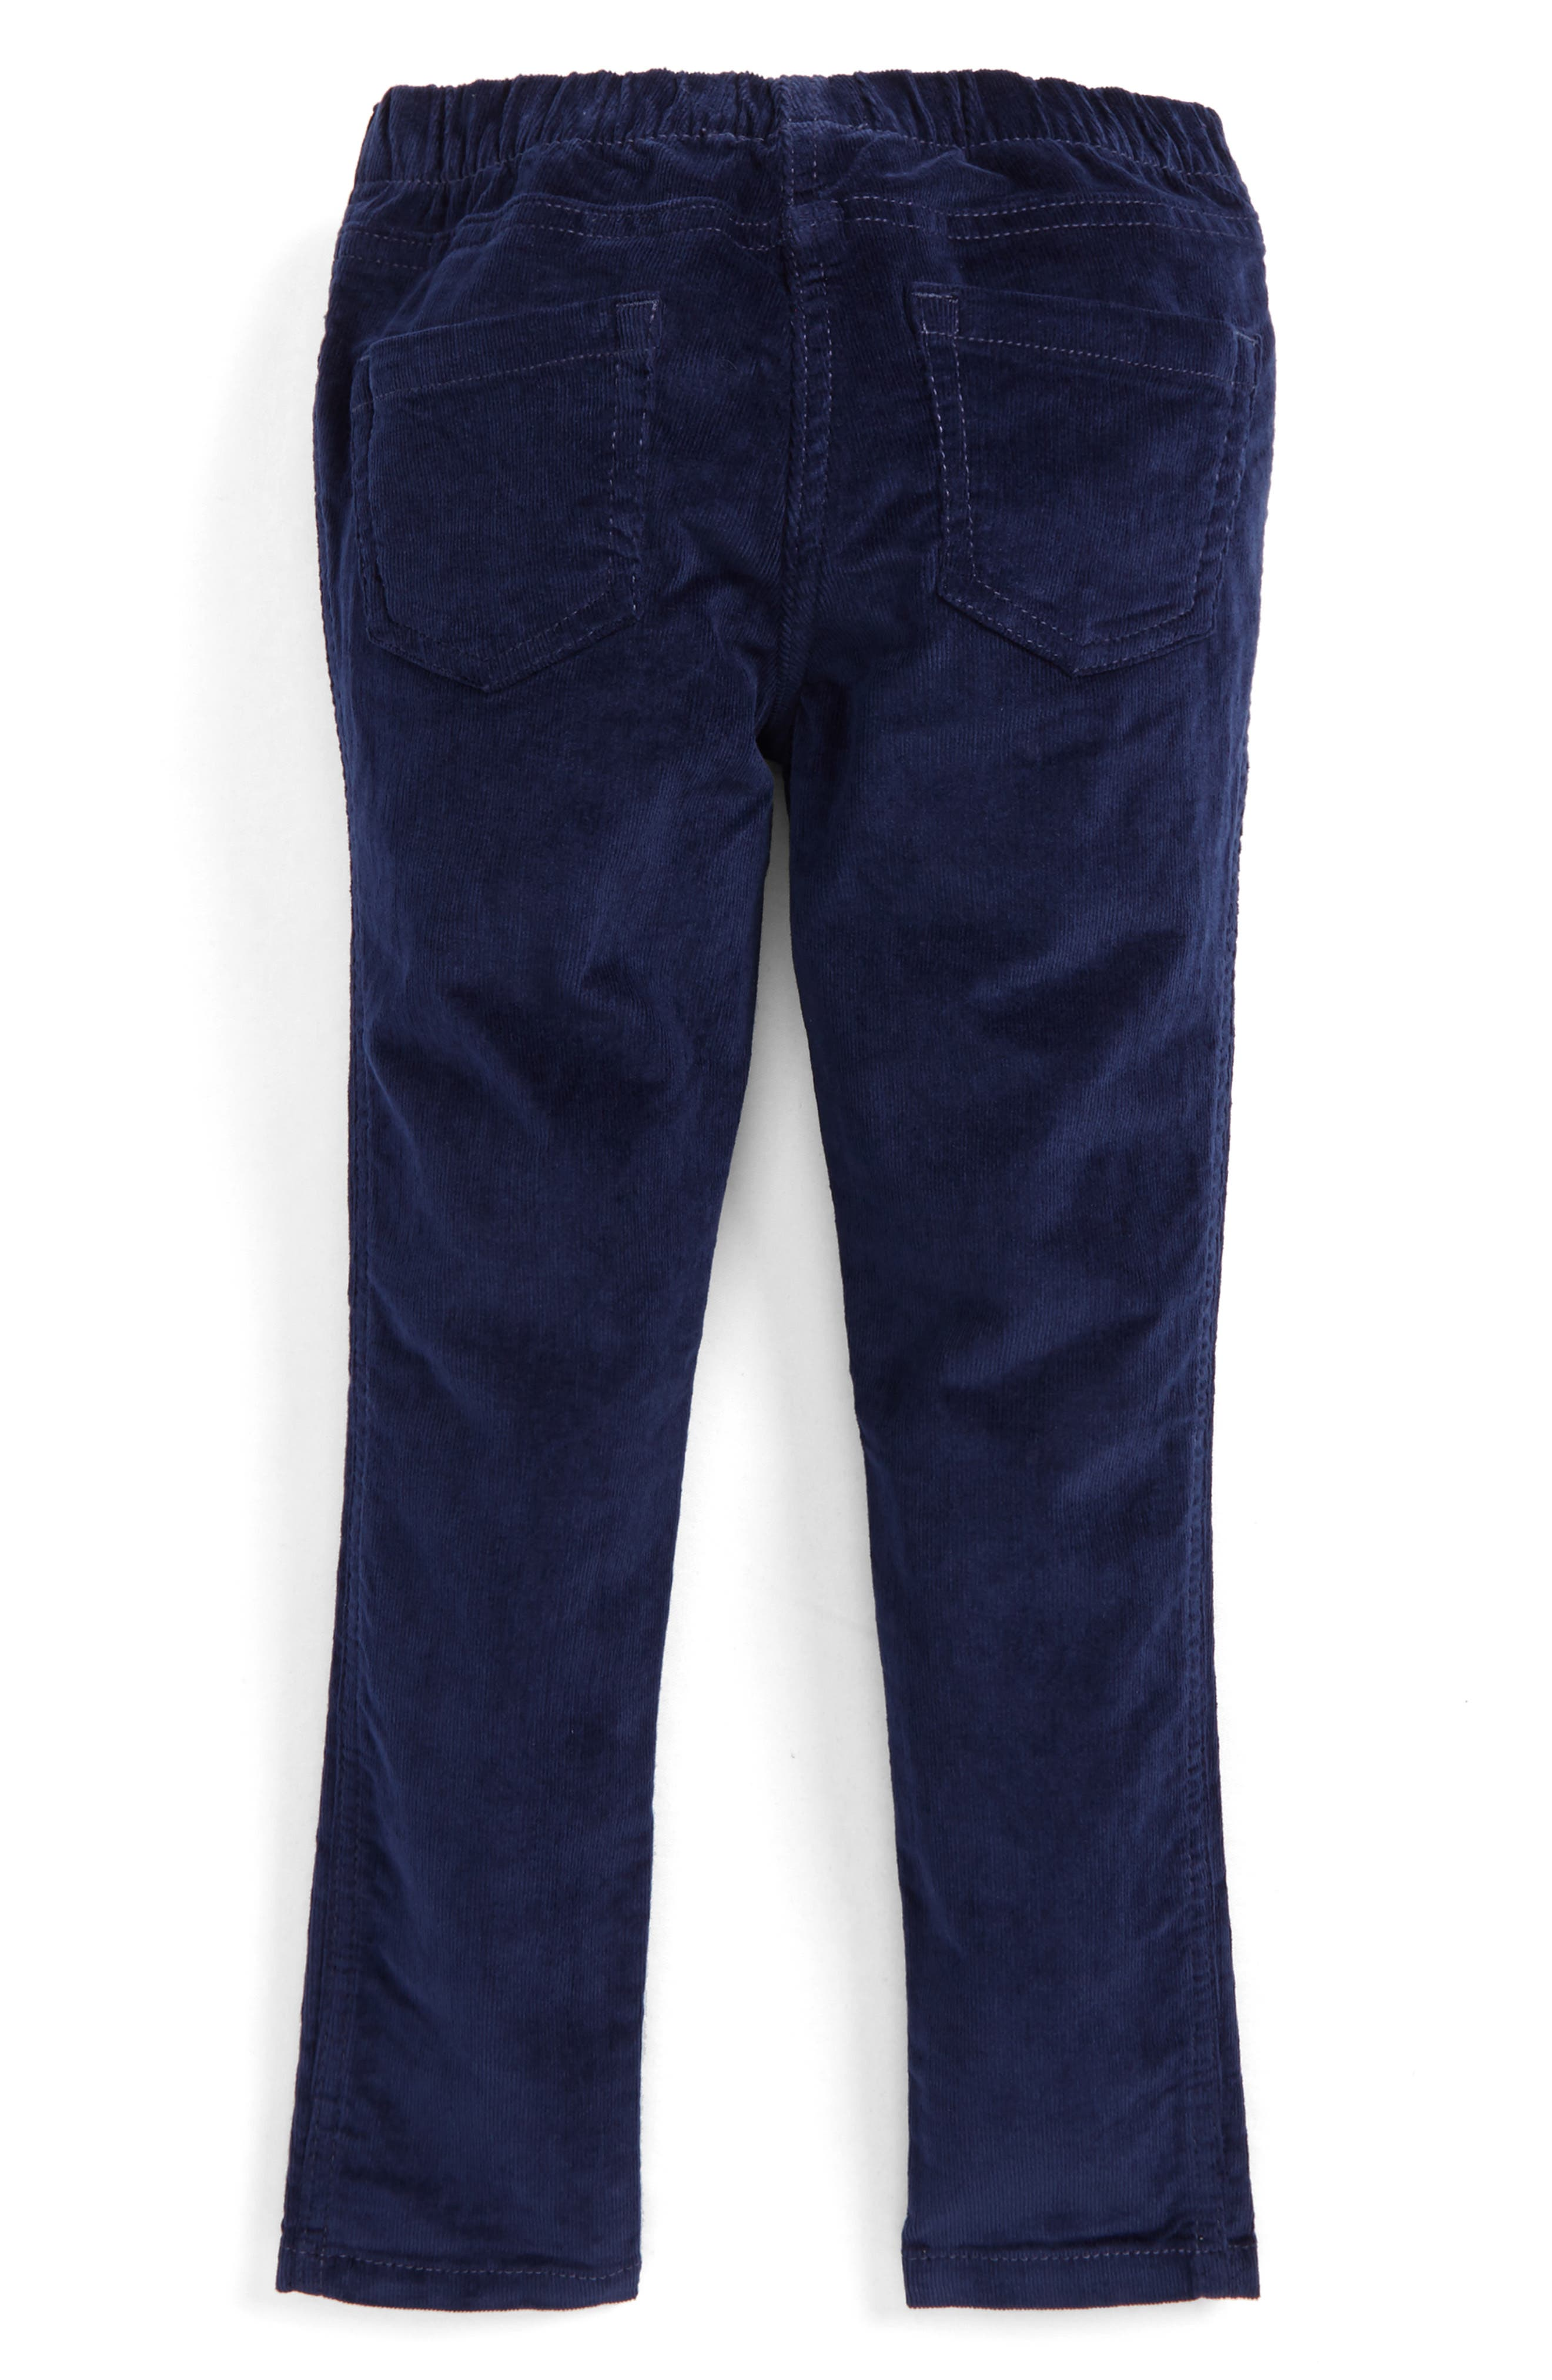 Corduroy Leggings,                             Alternate thumbnail 2, color,                             414